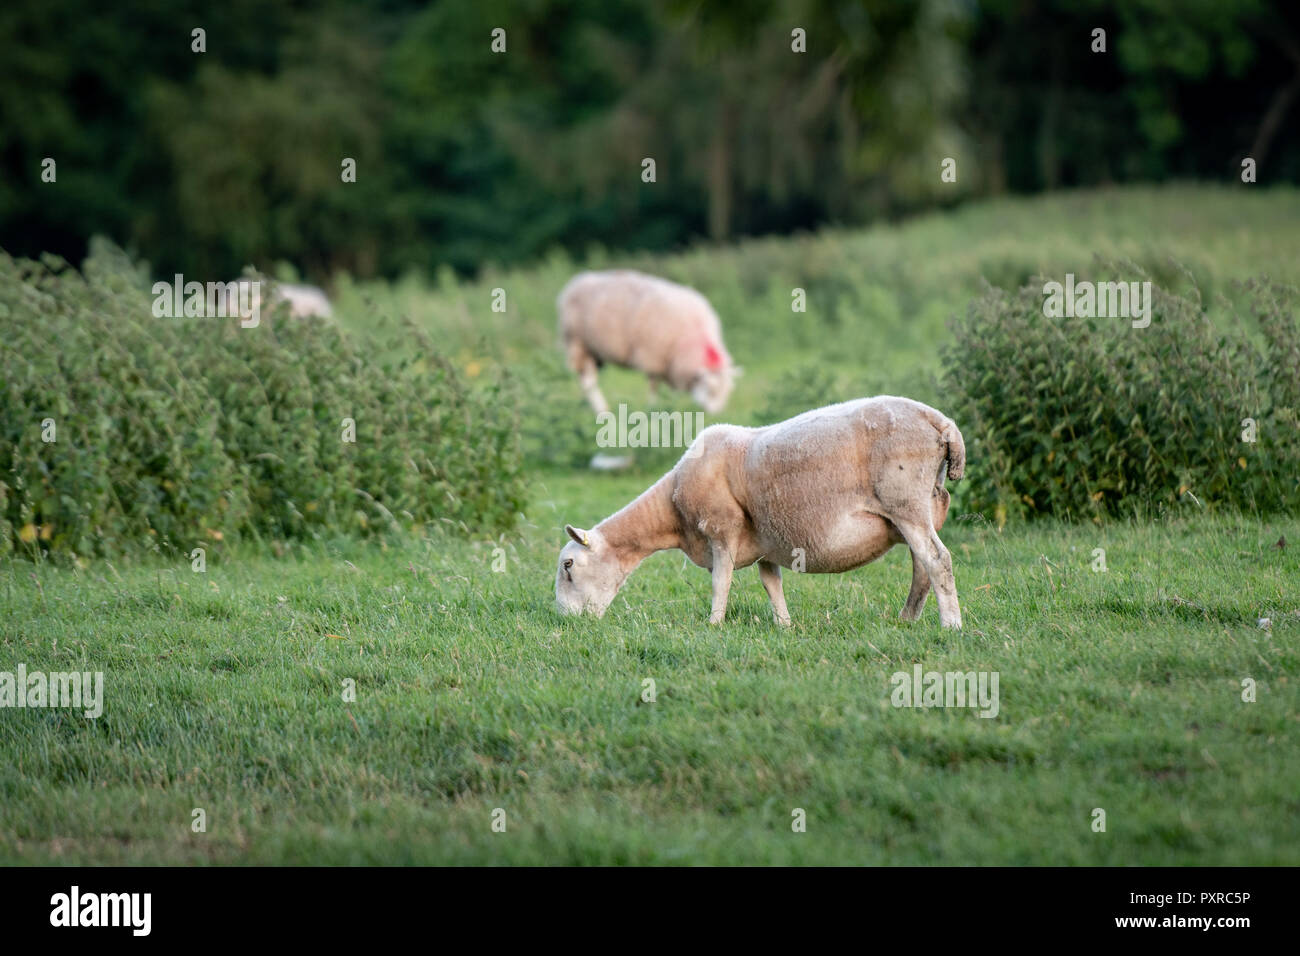 A recently sheared sheep grazes in its pasture outside Richmond, Yorkshire, UK. - Stock Image